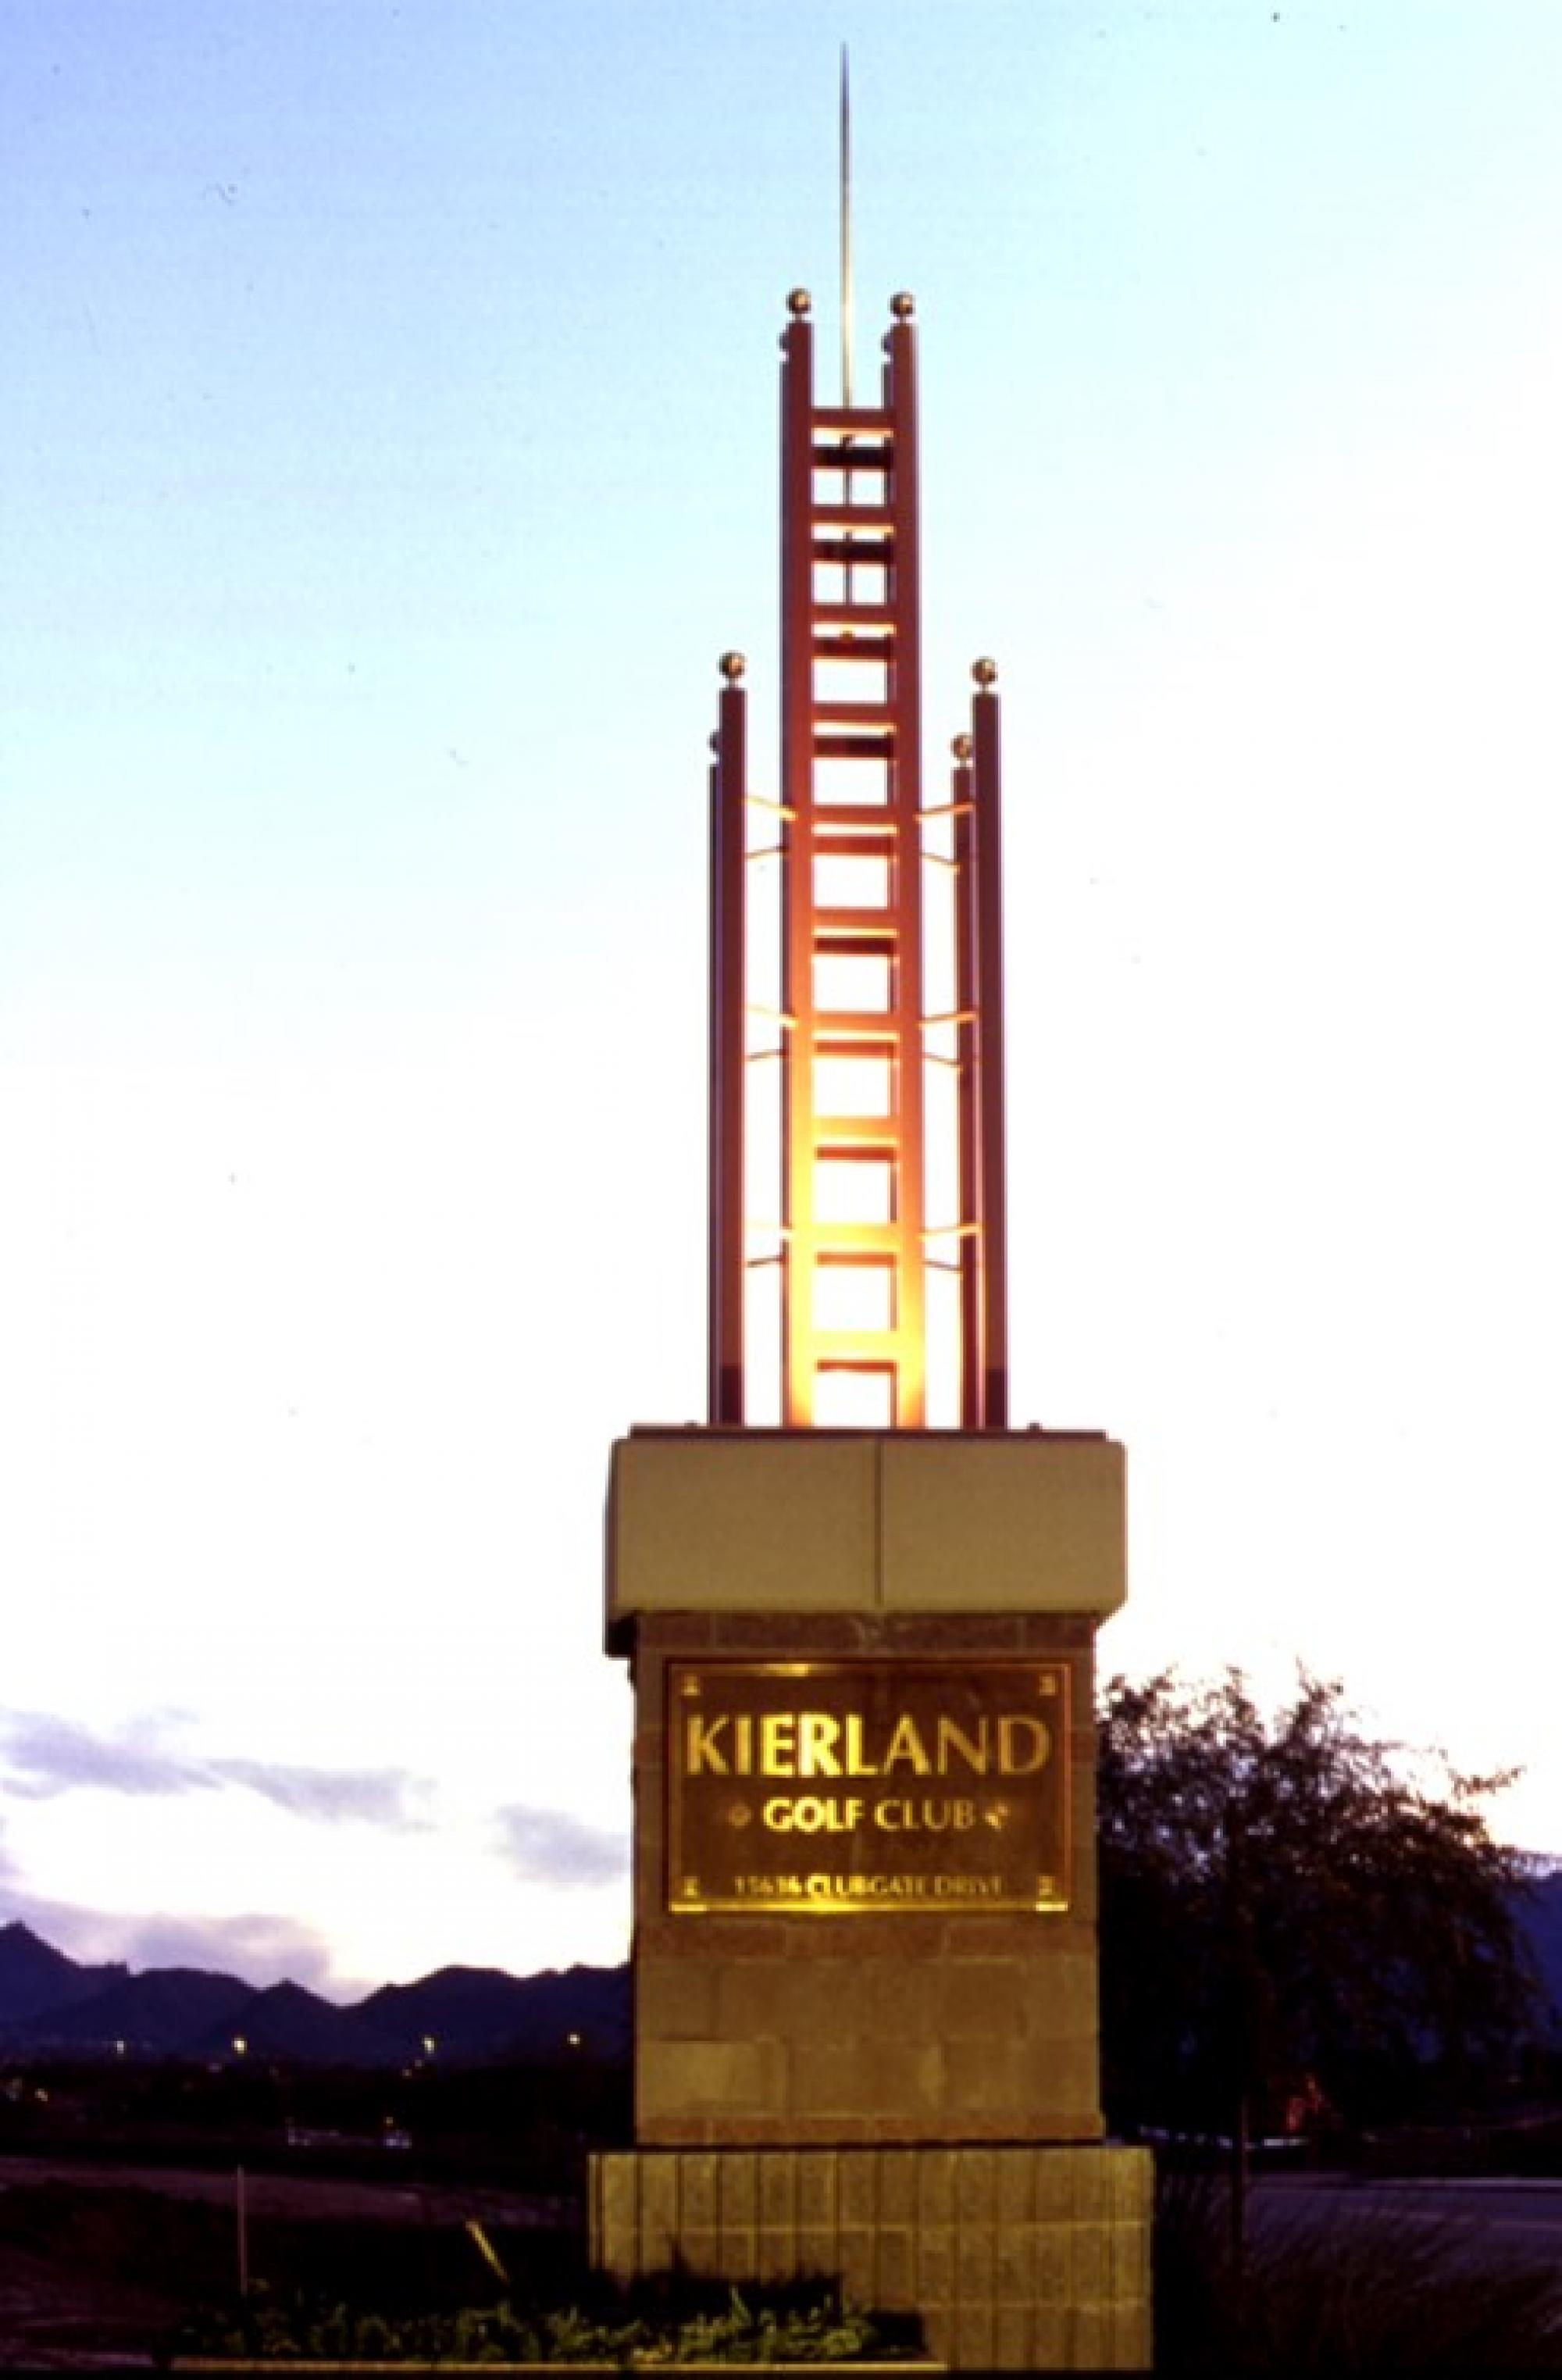 Kierland Golf Club Entry Monument